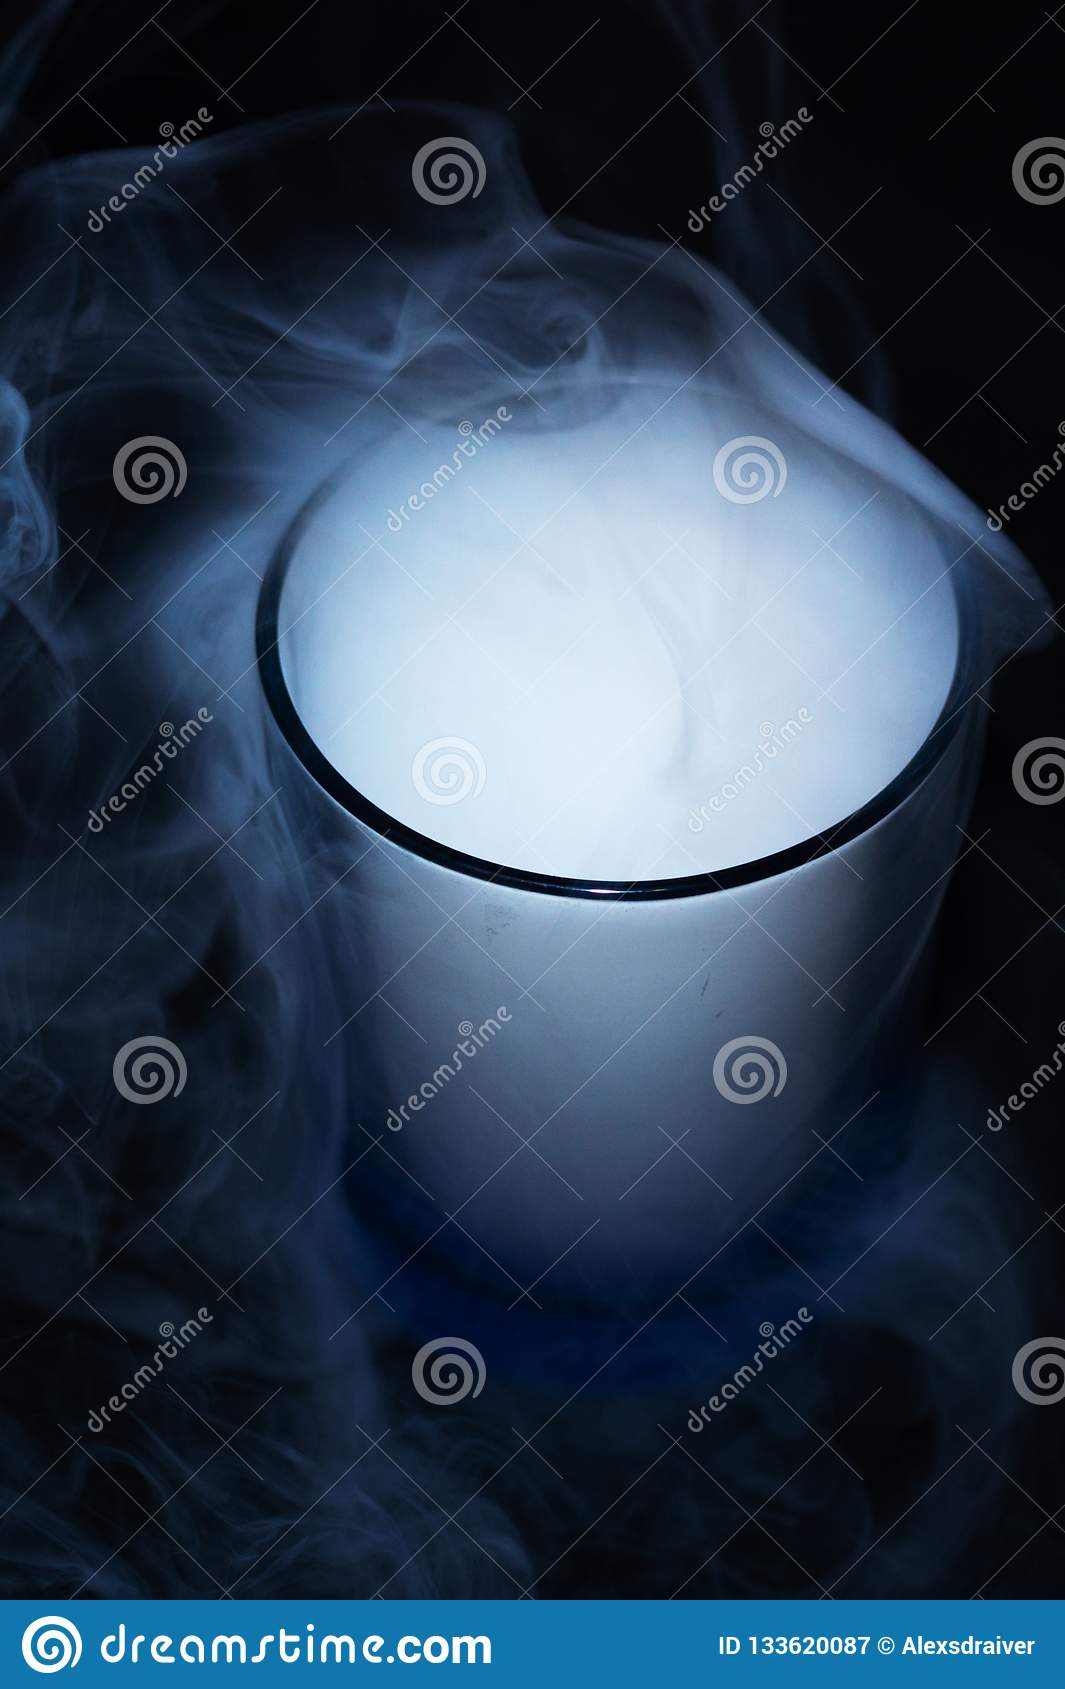 White smoke on black fabric background in glass. Smoke spreads over the background. Vaping culture, life without cigarettes.